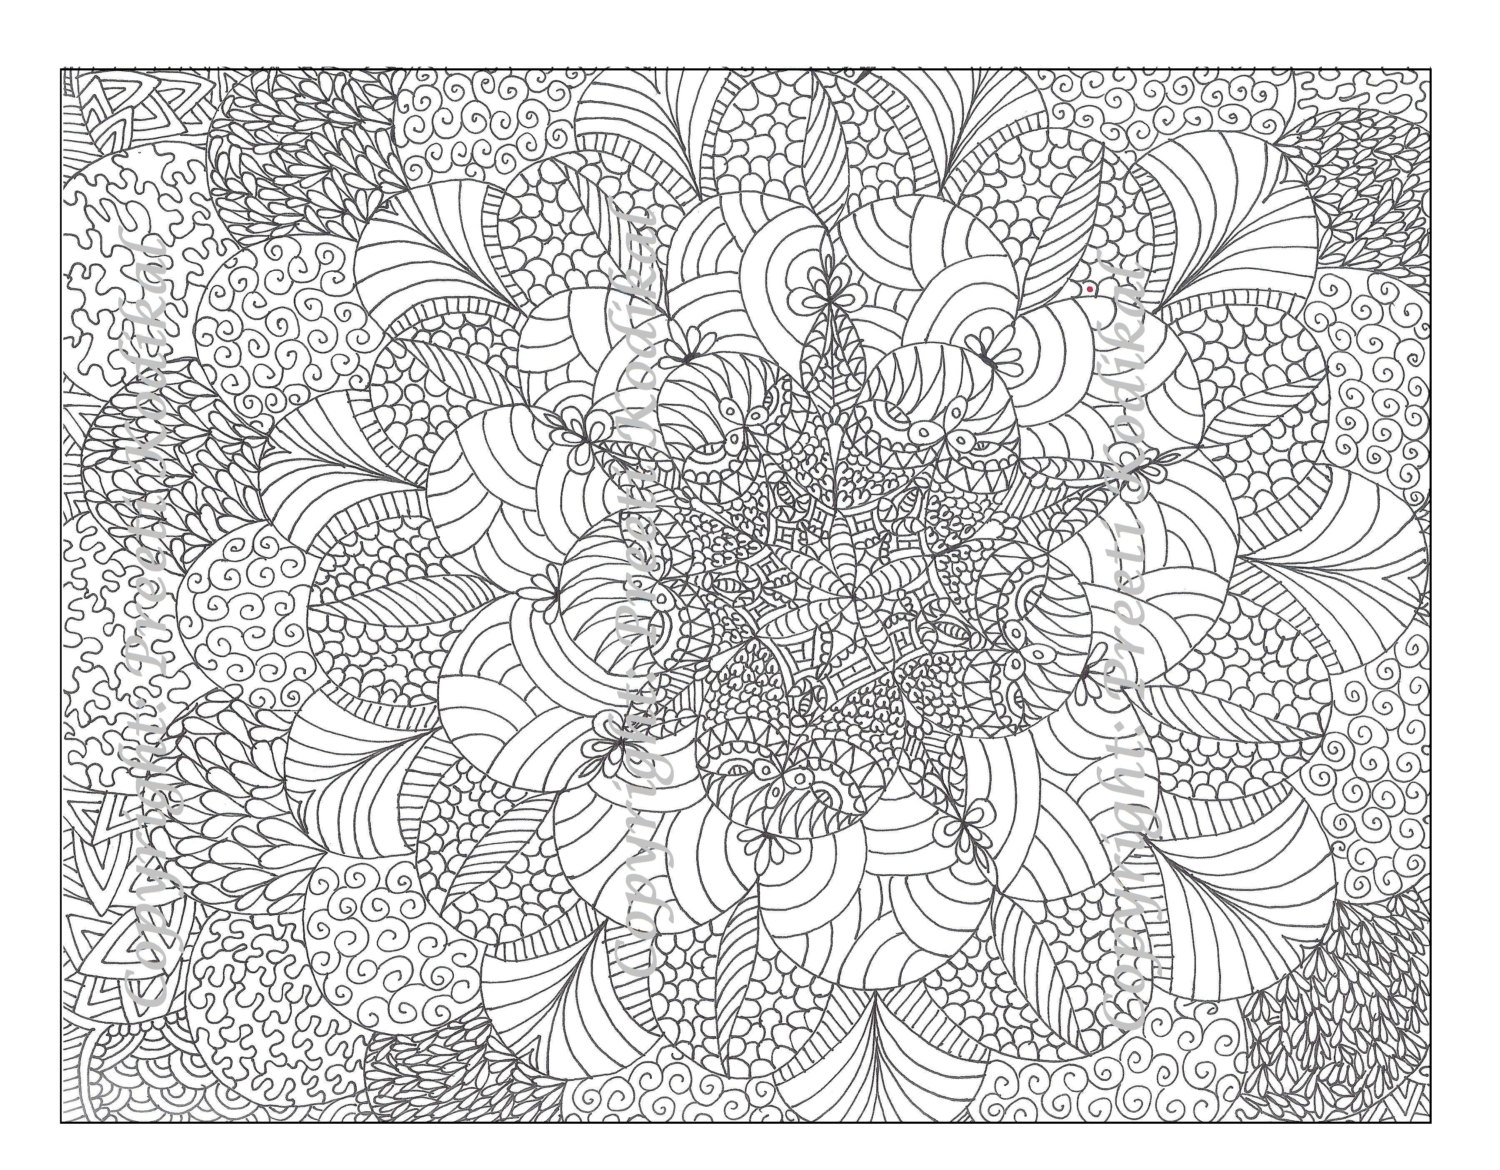 detailed coloring pages printable - Detailed Color Pages